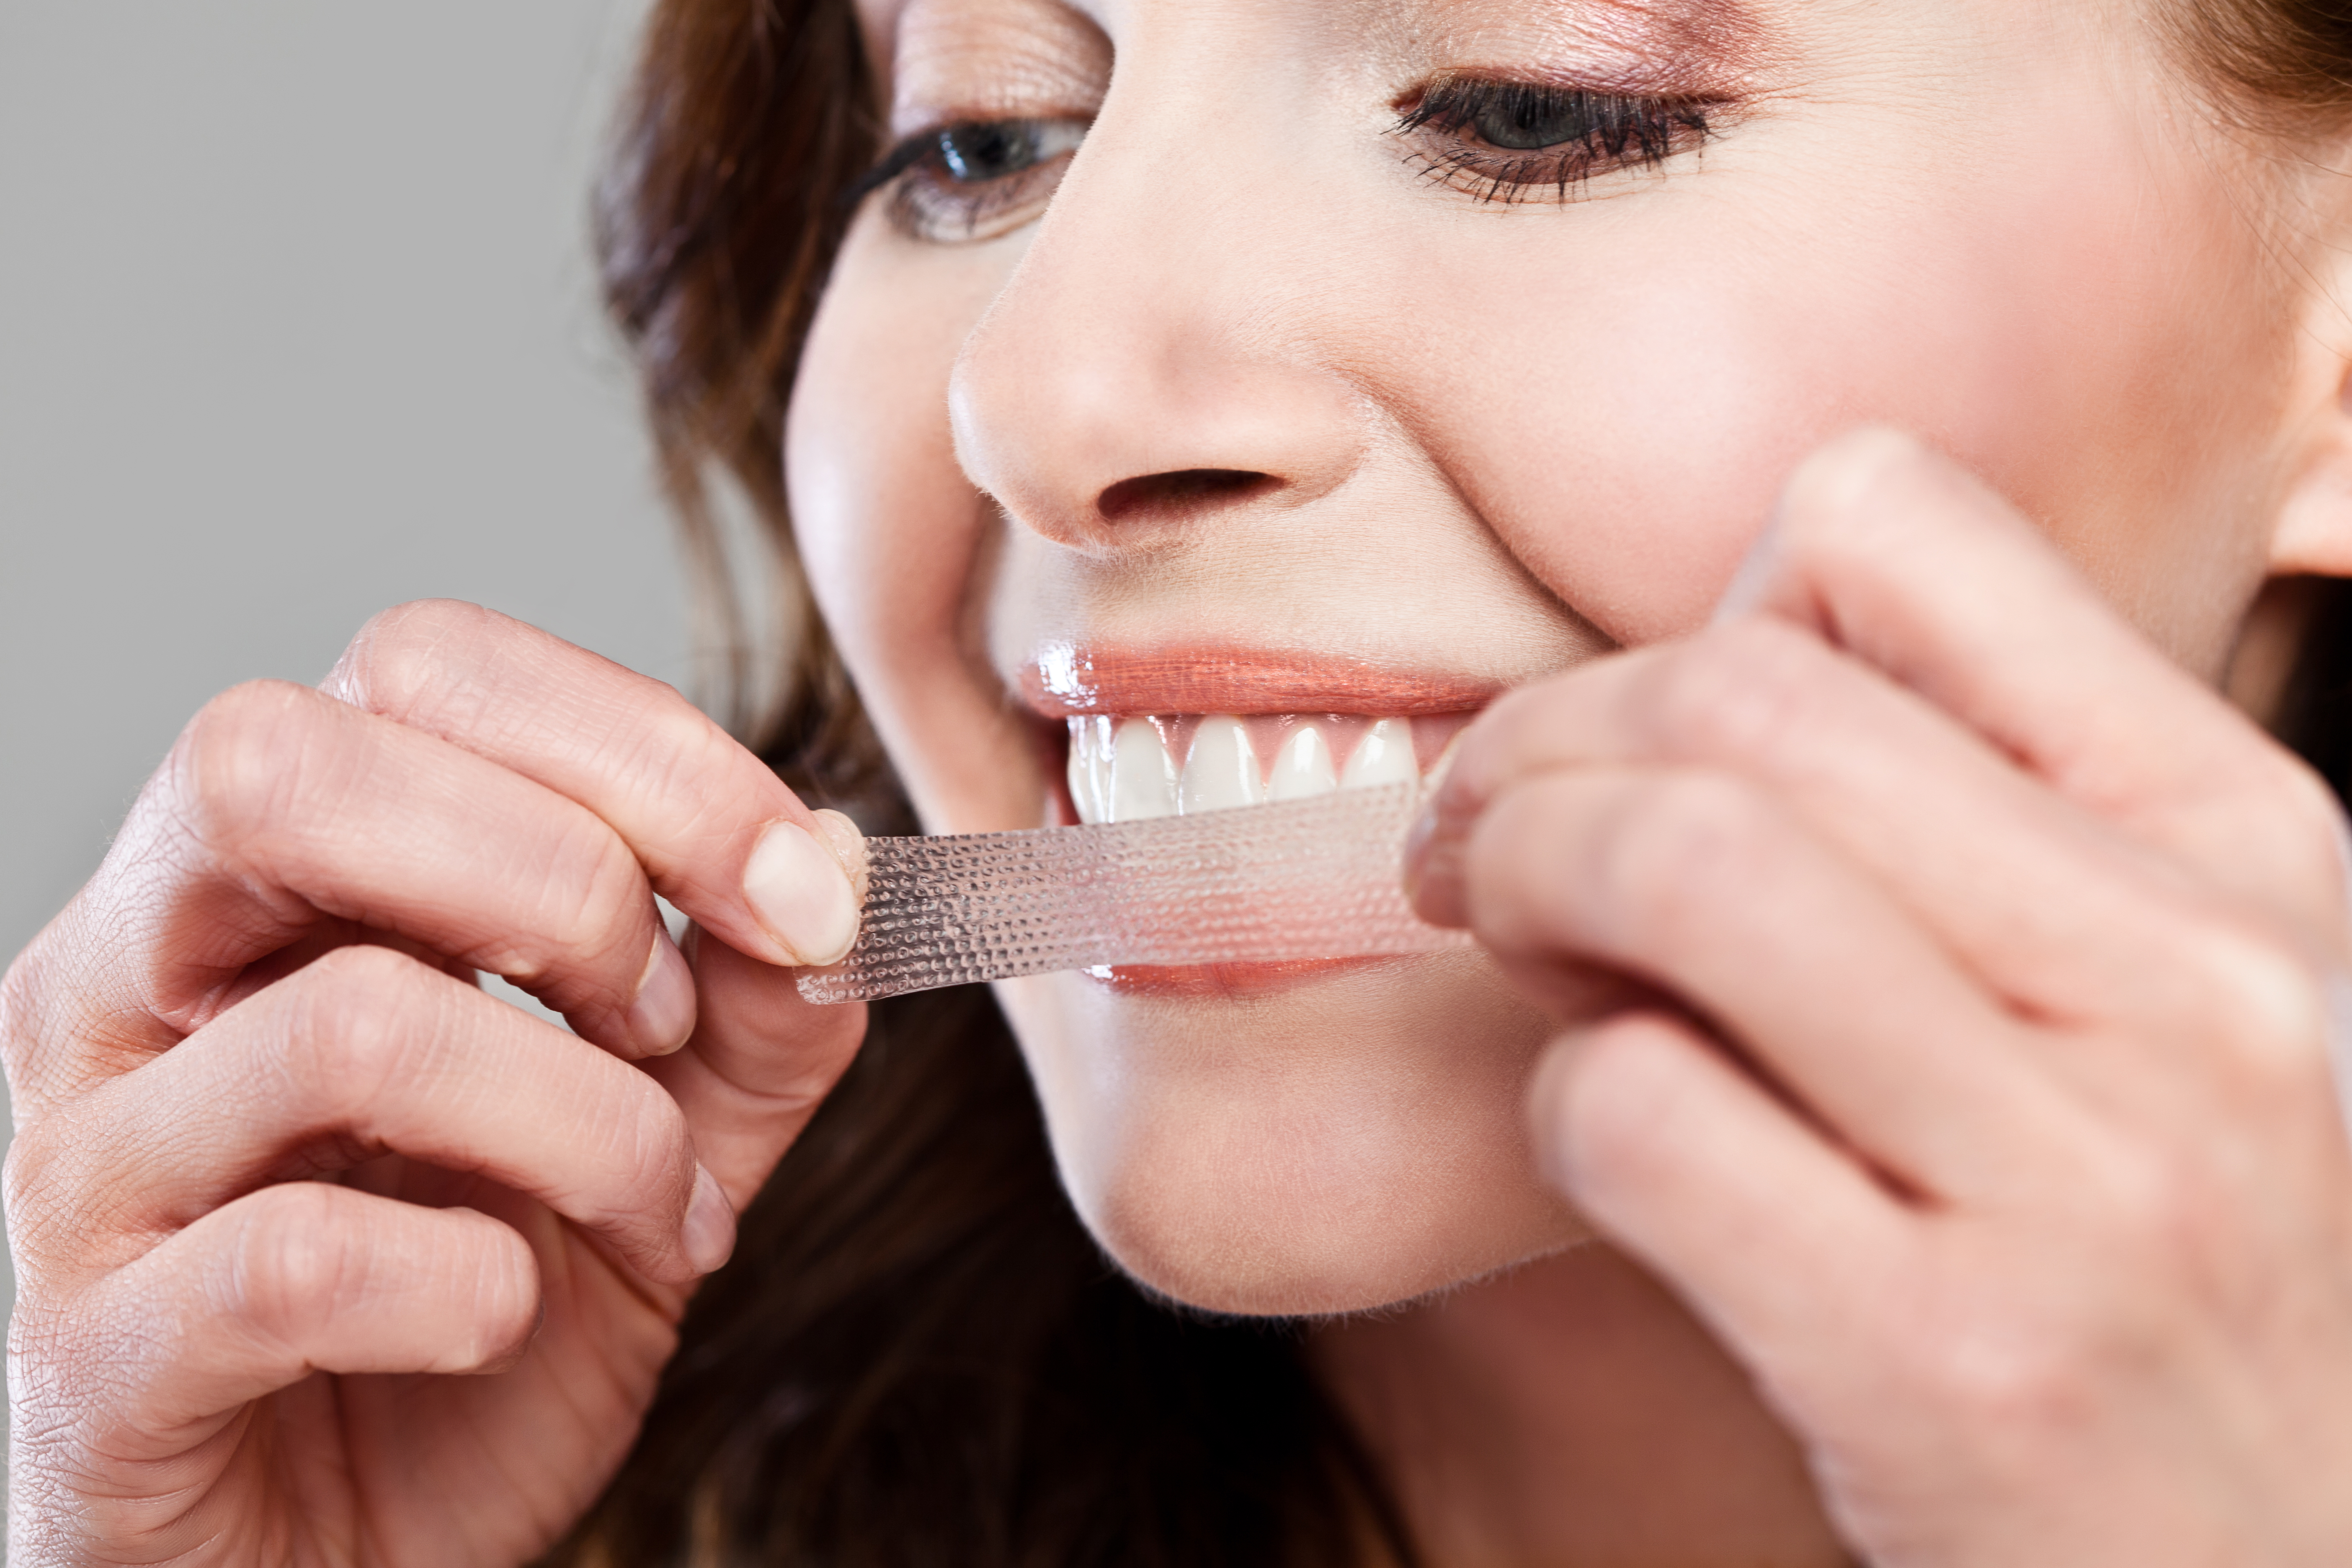 Tooth Whitening Choices Are Complicated Here S What Works The